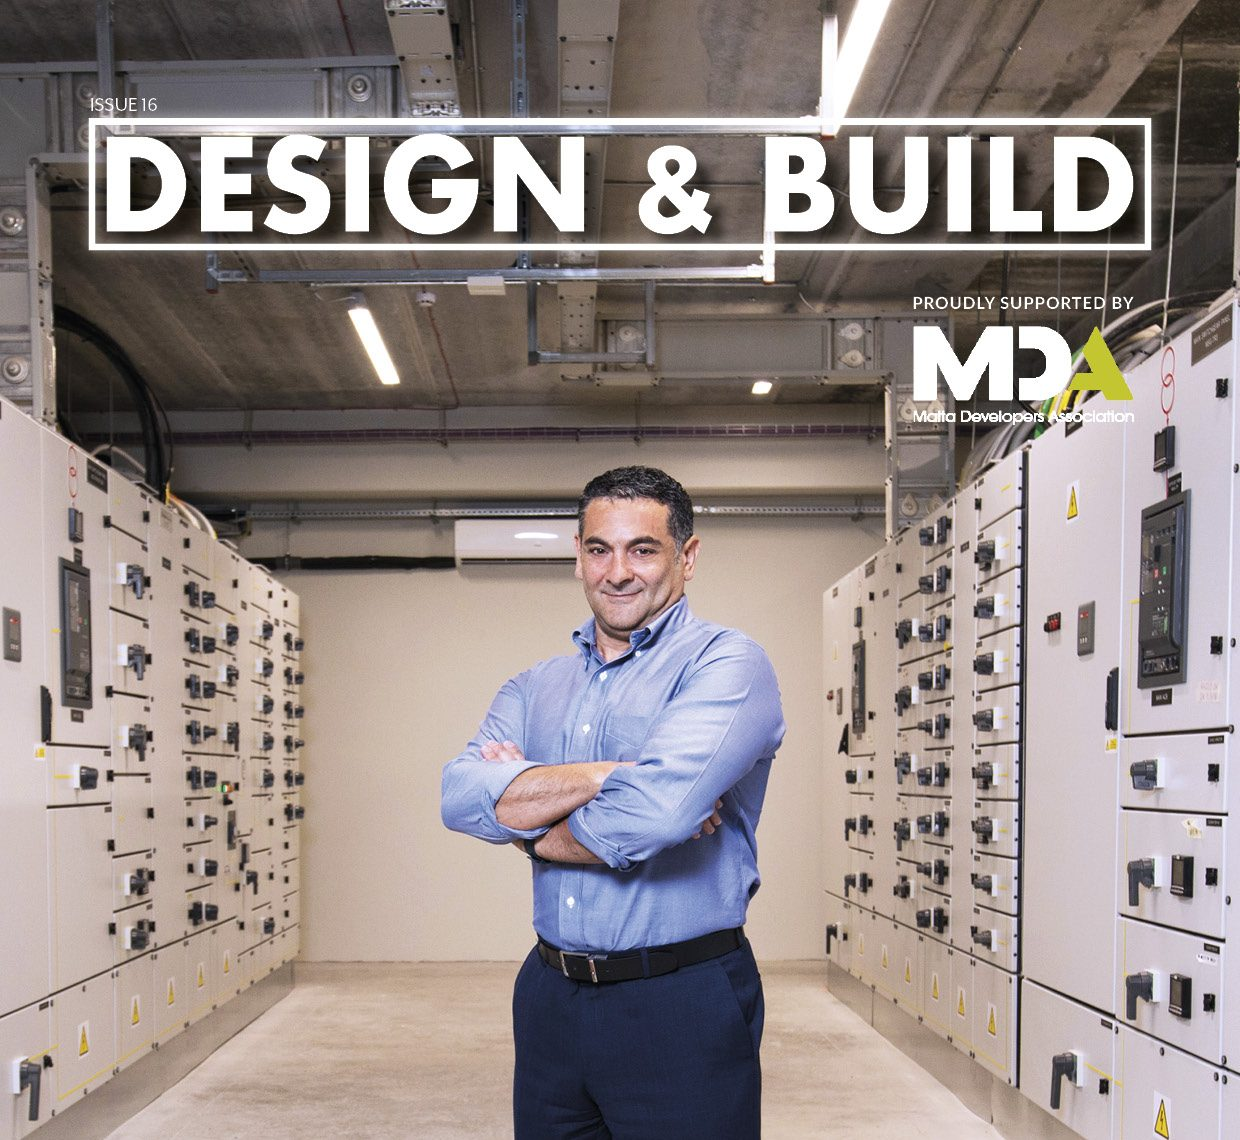 Hydrolectric Limited featured in issue 16 of Design & Build.